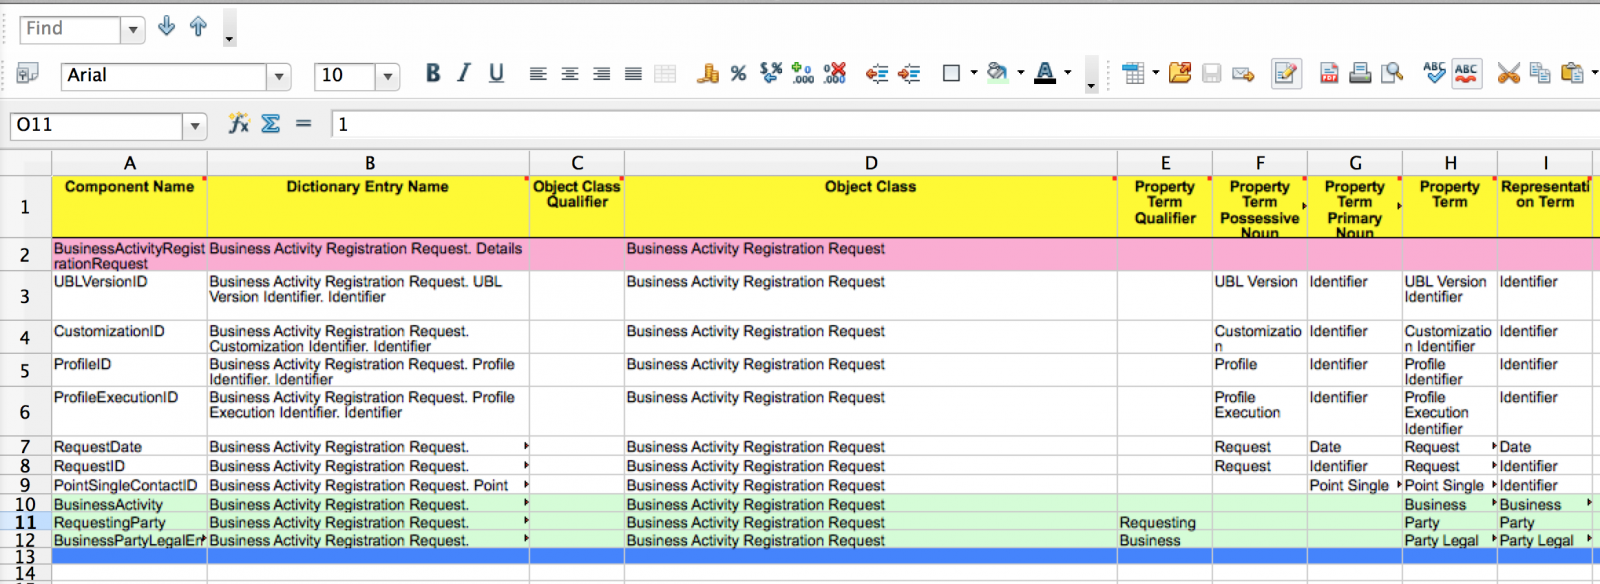 Openoffice spreadsheet to create the UBL NDR document